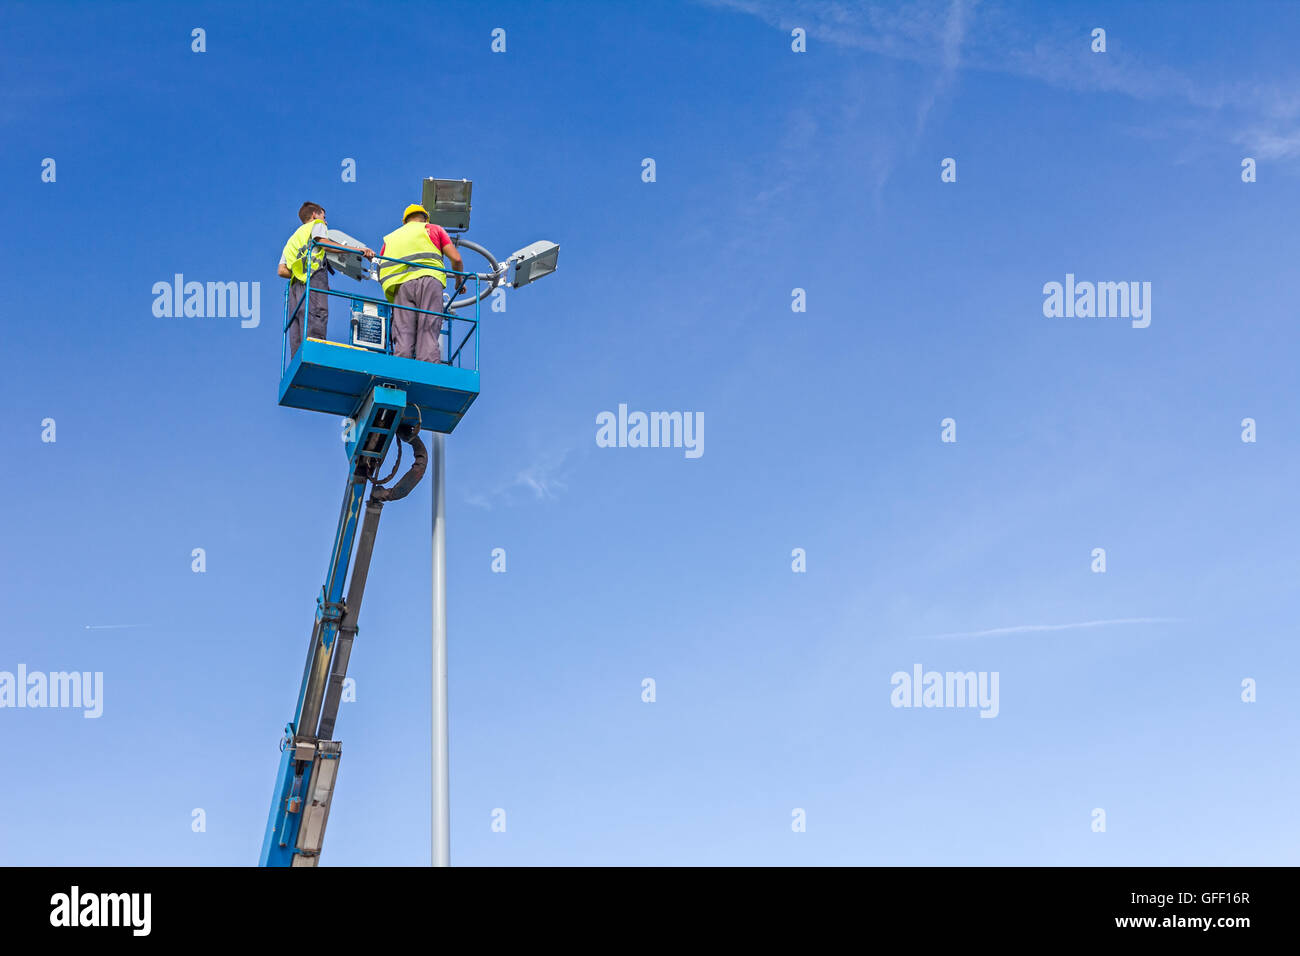 High elevated cherry picker with team of workers on floodlight. - Stock Image